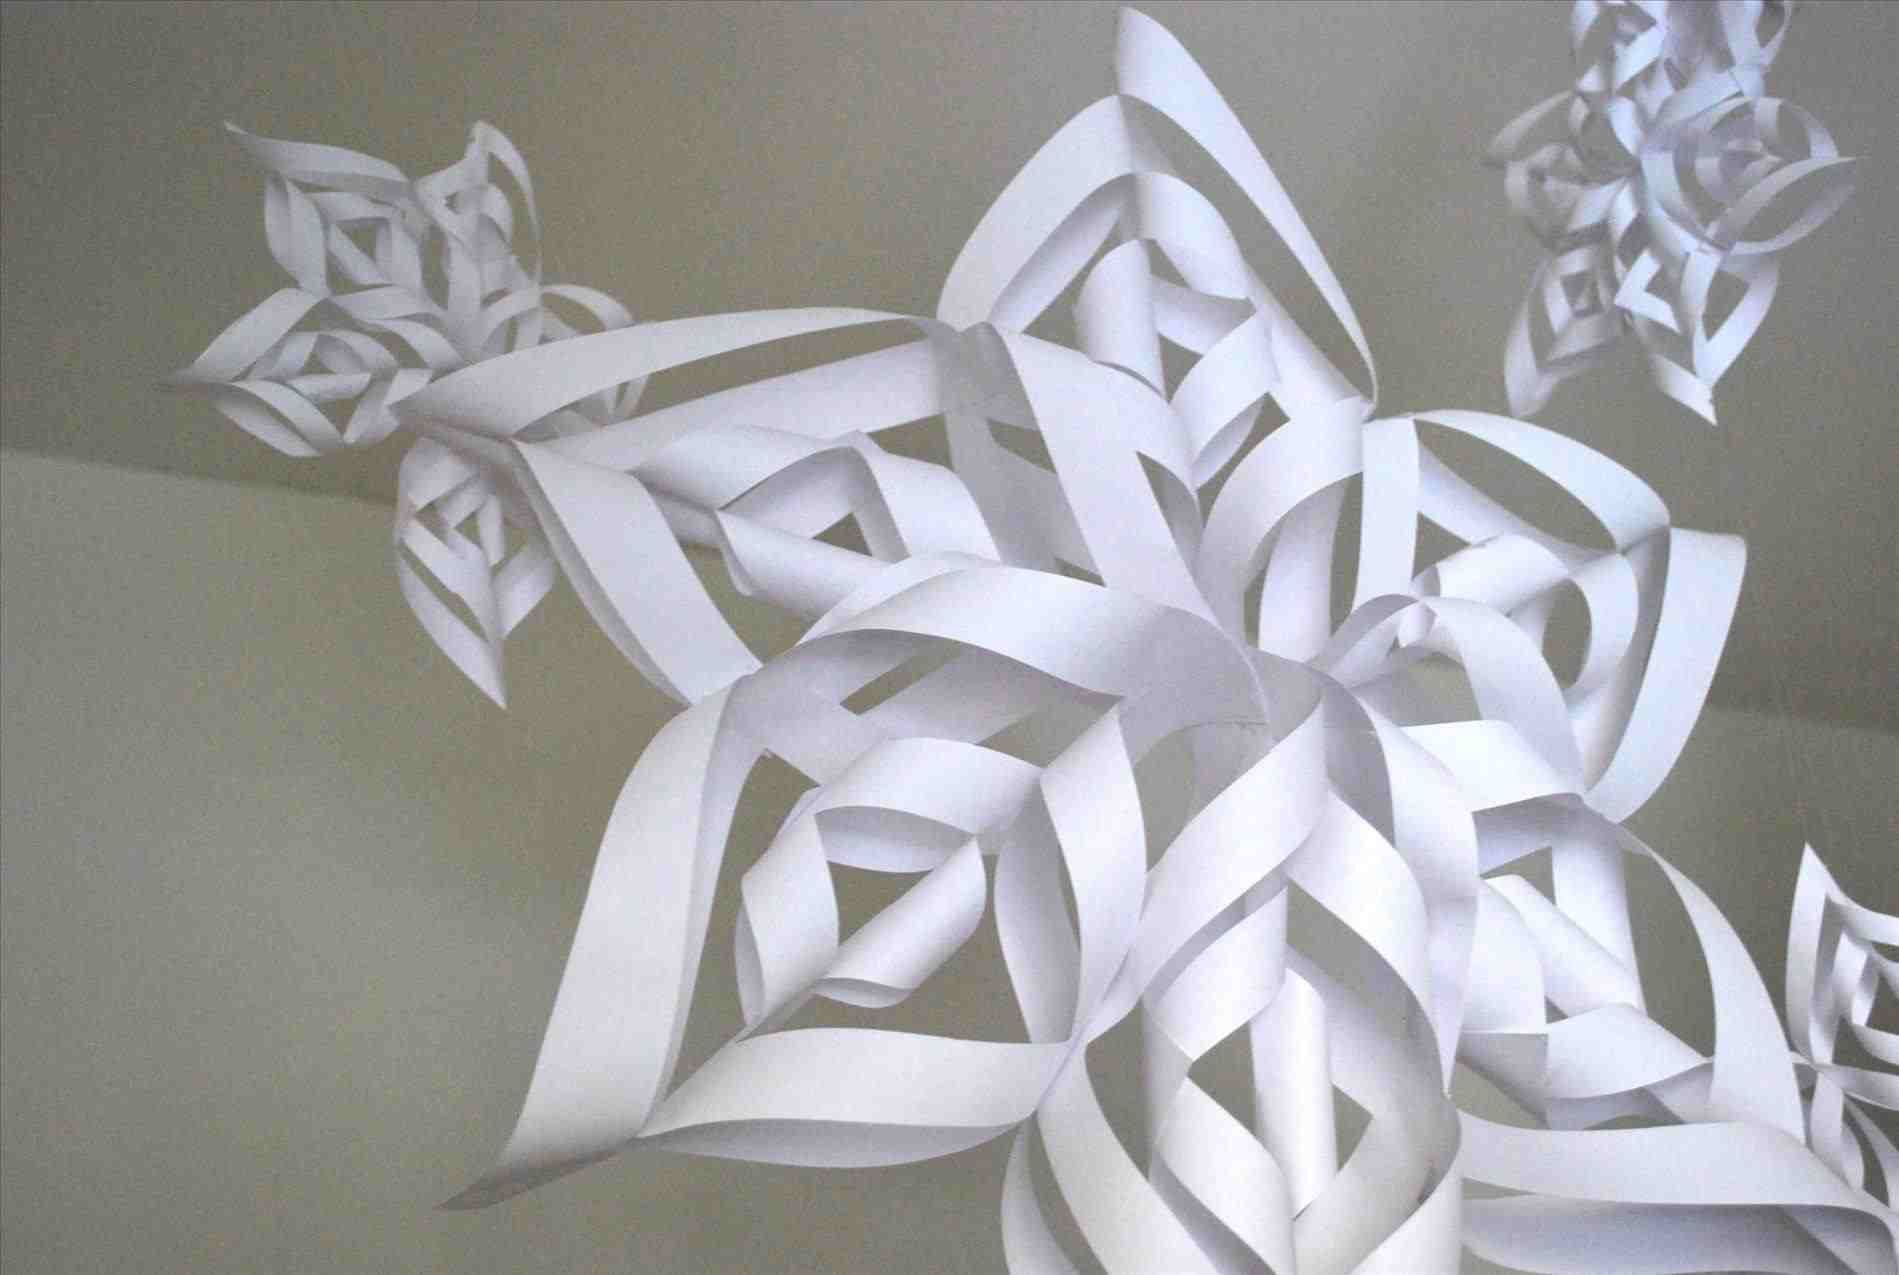 How to Make a 3D Paper Snowflake How to Make a 3D Paper Snowflake new images